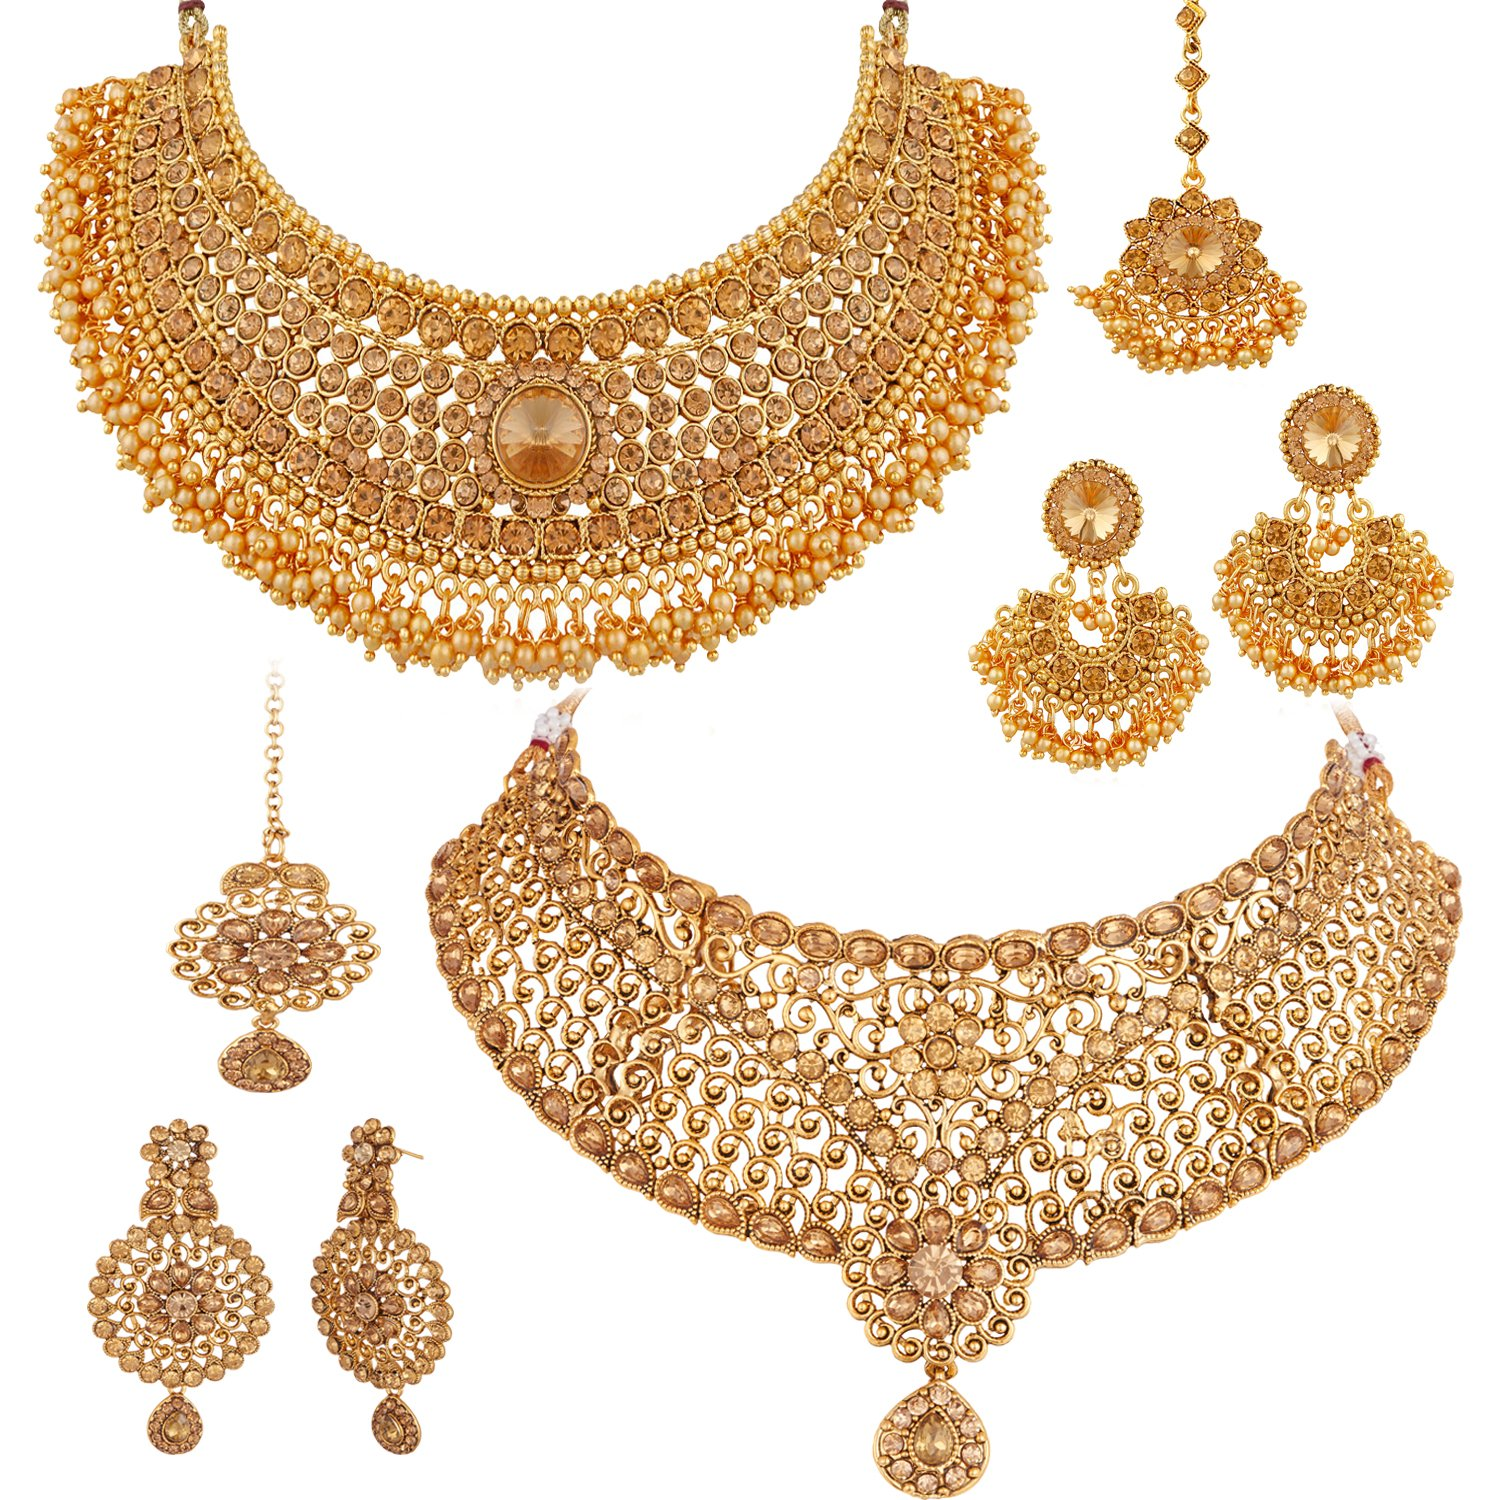 Apara Bridal Pearl Lct Stones Gold Necklace Set Jewellery: Best Rated In Women's Jewellery Sets & Helpful Customer